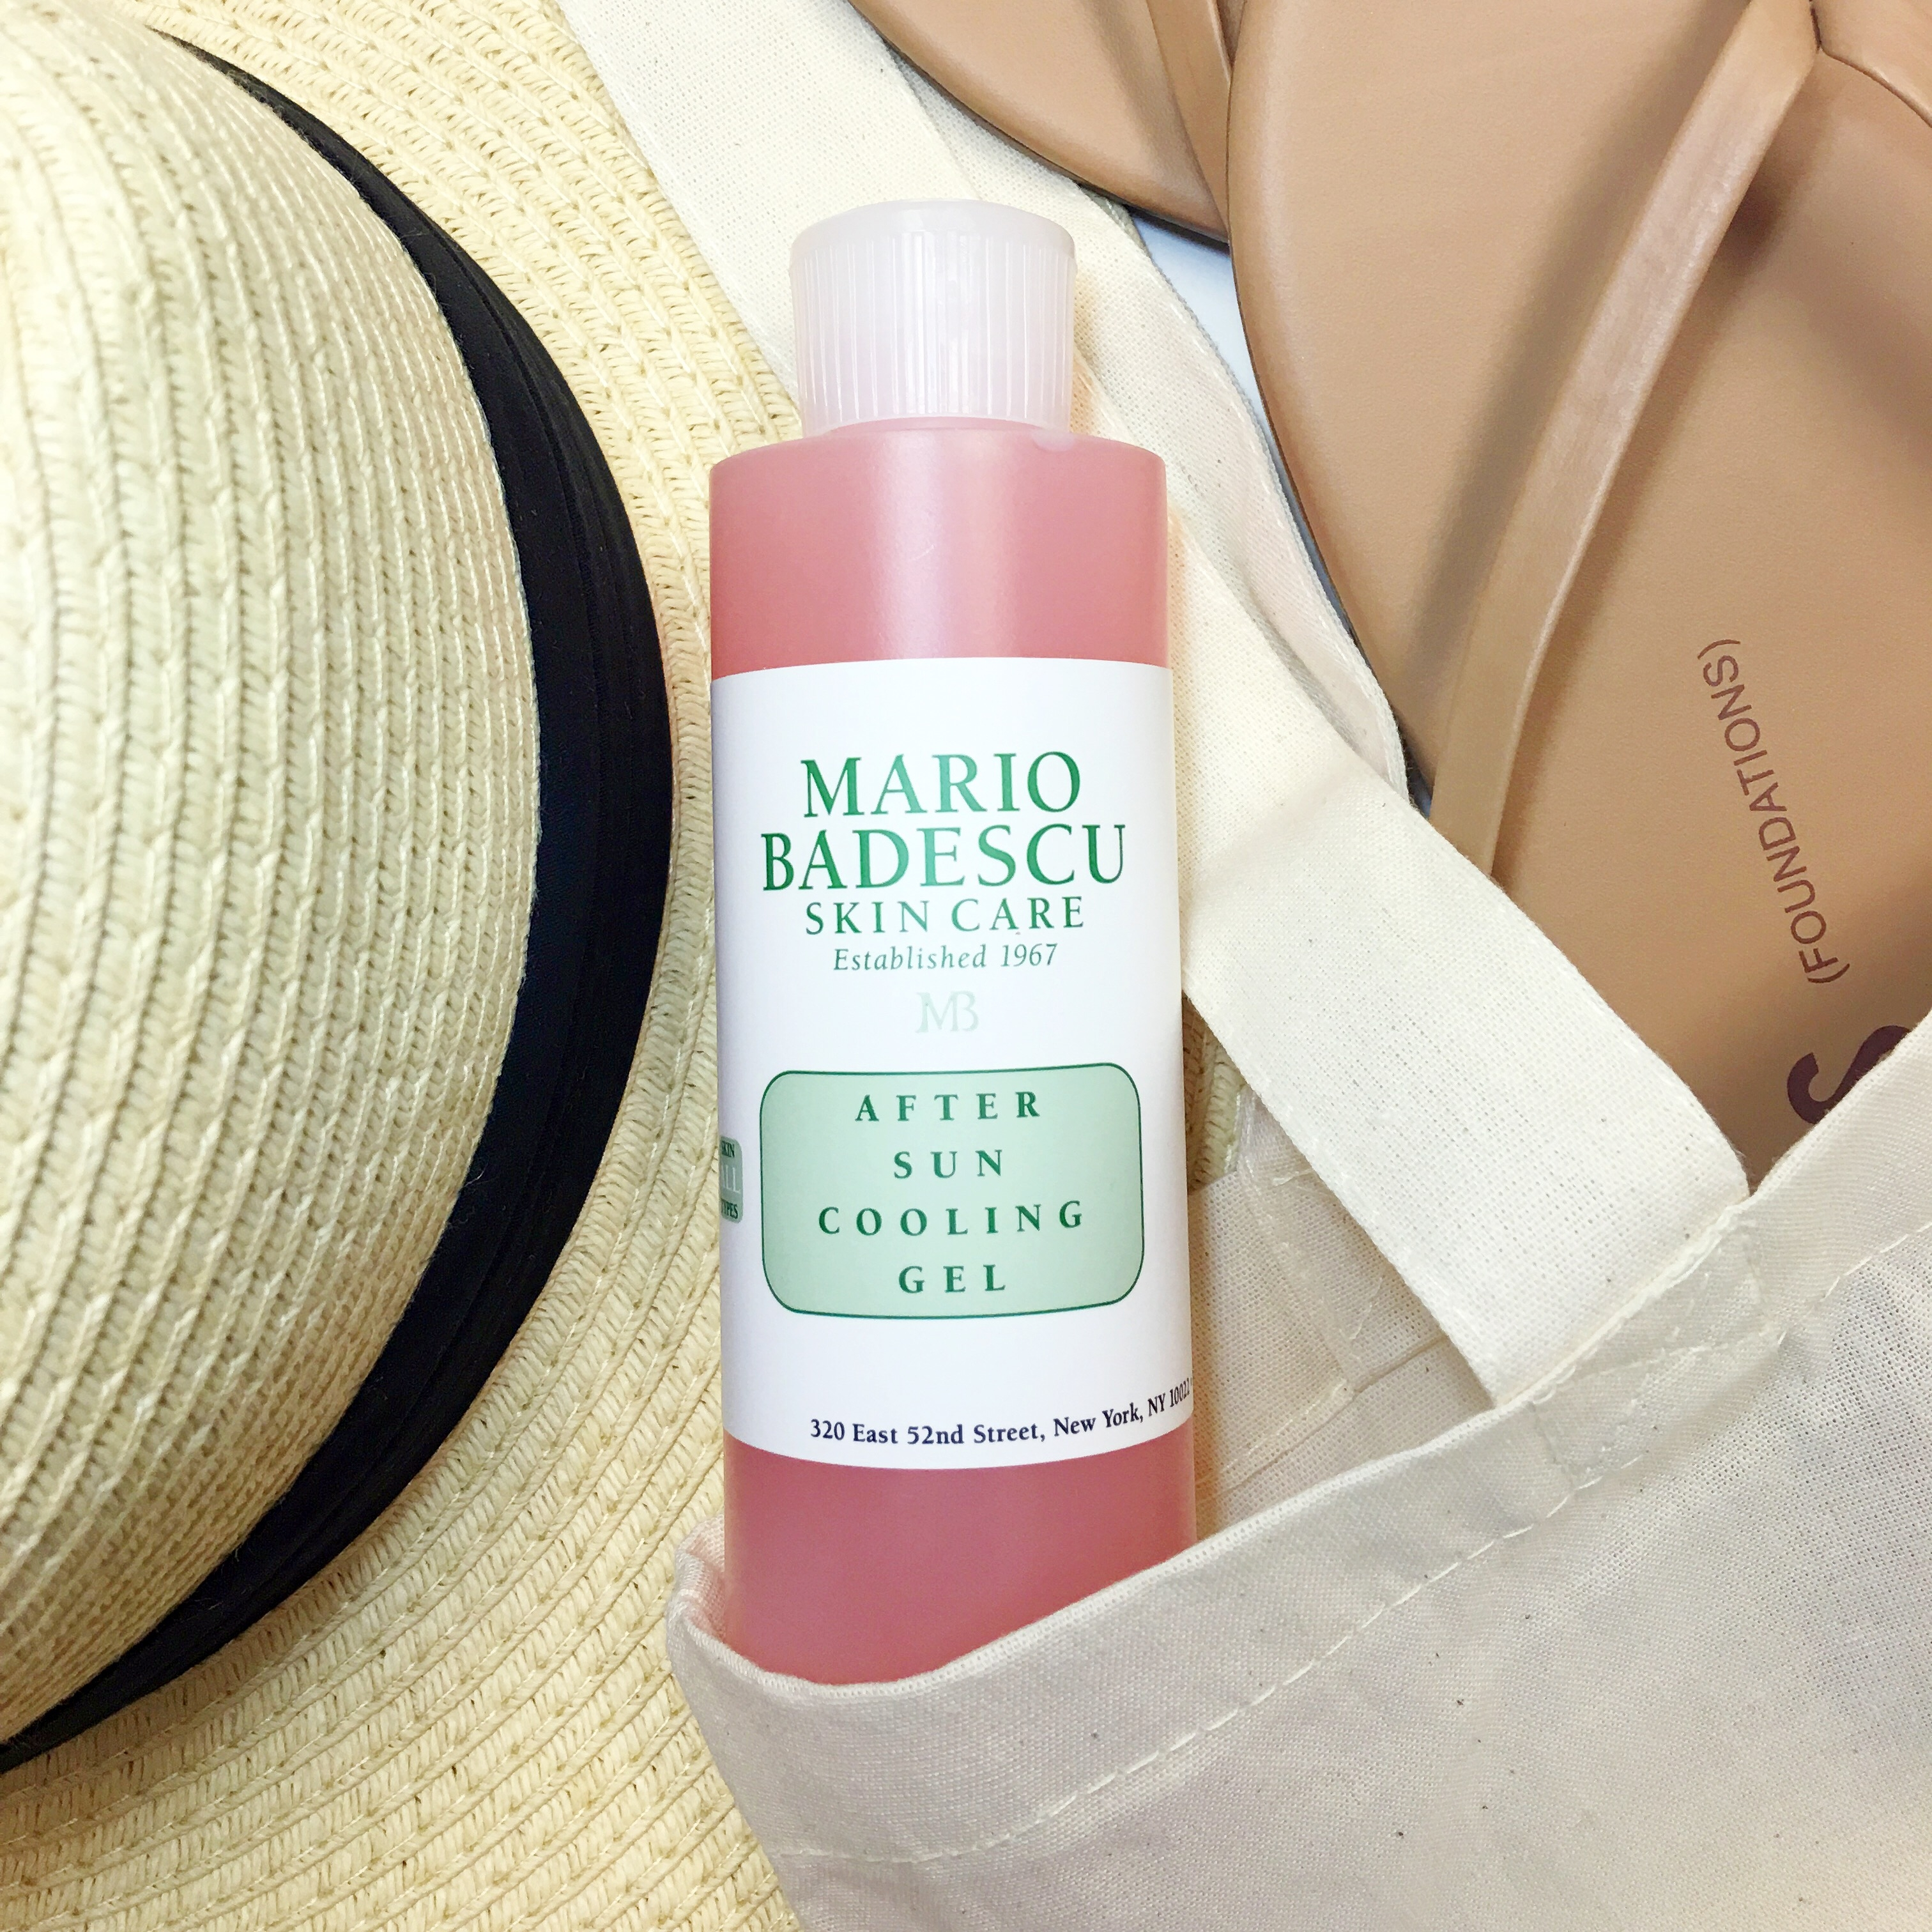 After Sun Cooling Gel summer must-have